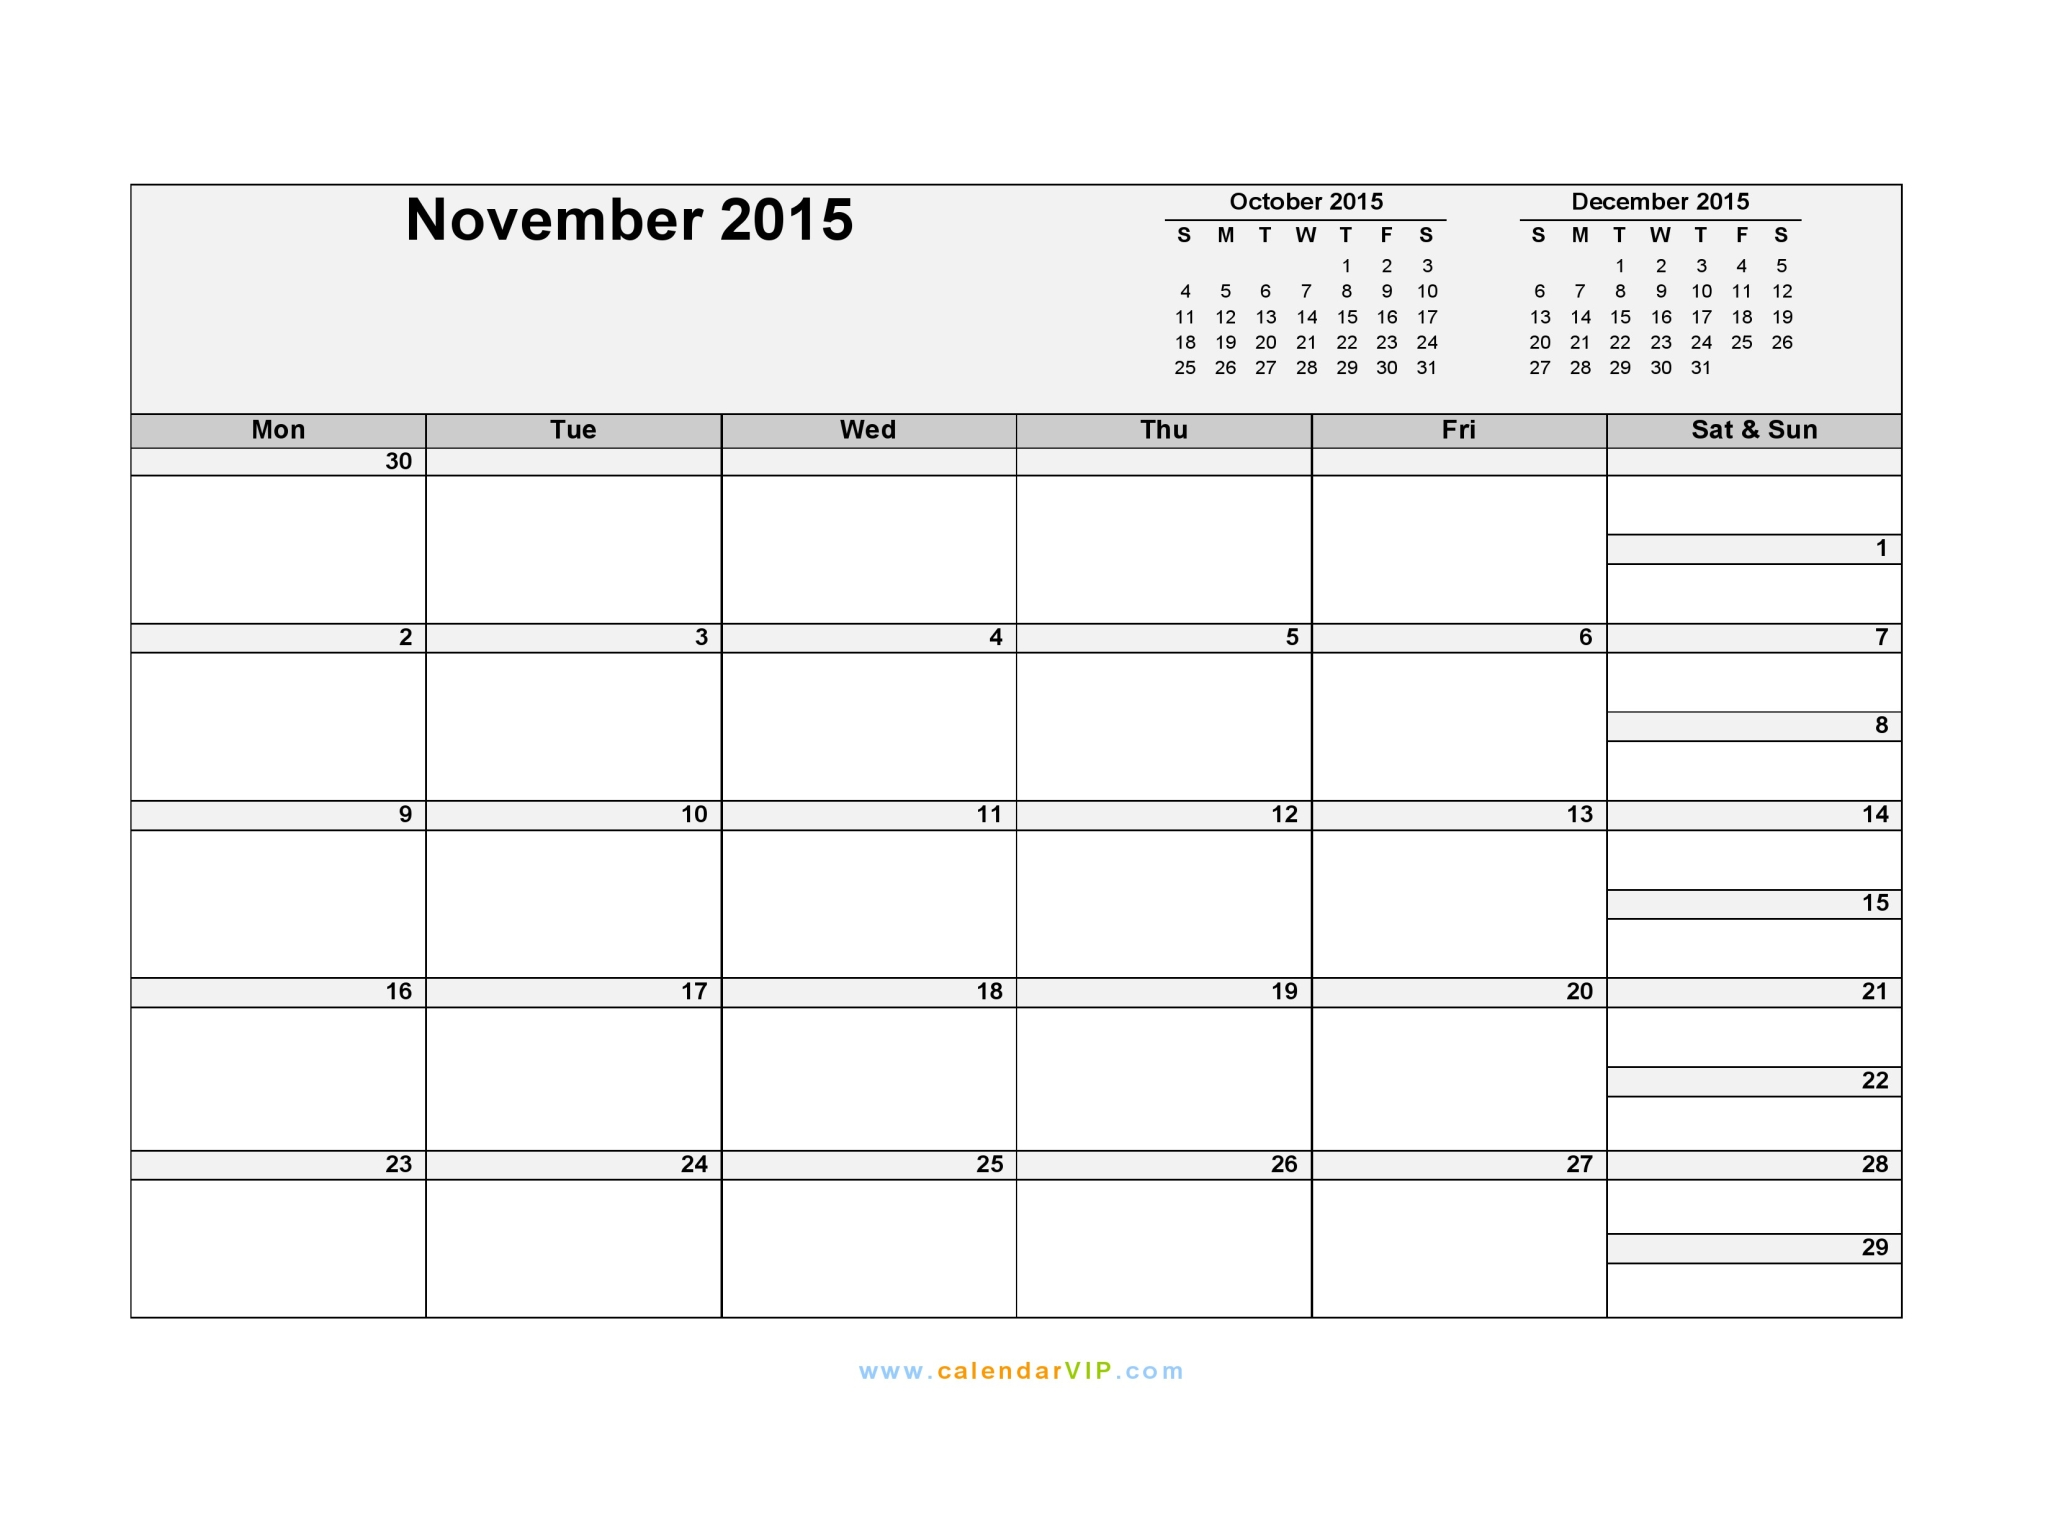 November 2015 Calendar - Blank Printable Calendar Template in PDF ...